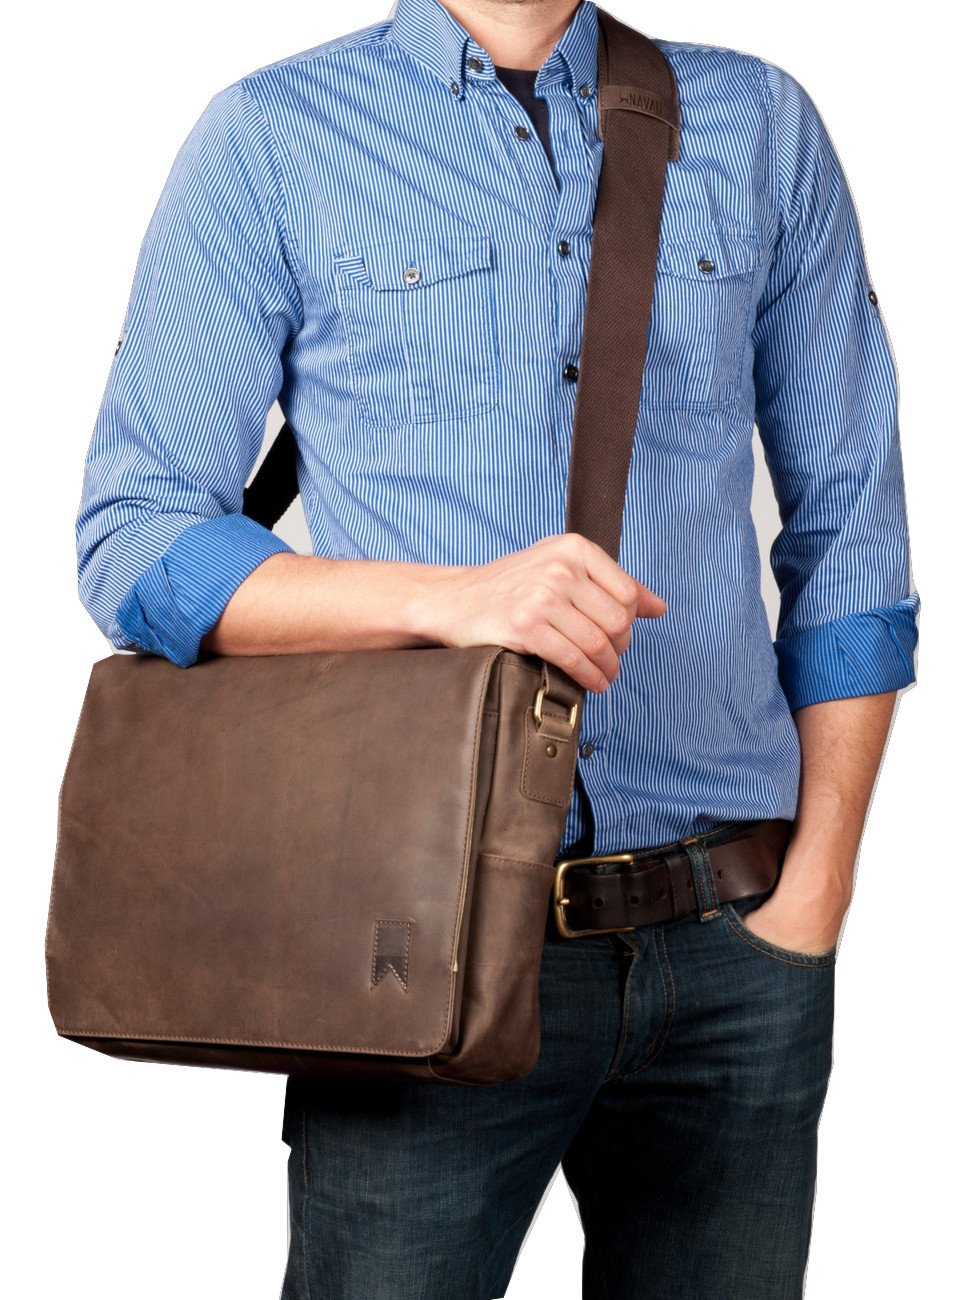 Navali Leather Mainstay Computer Messenger Bag, Brown by Navali (Image #5)